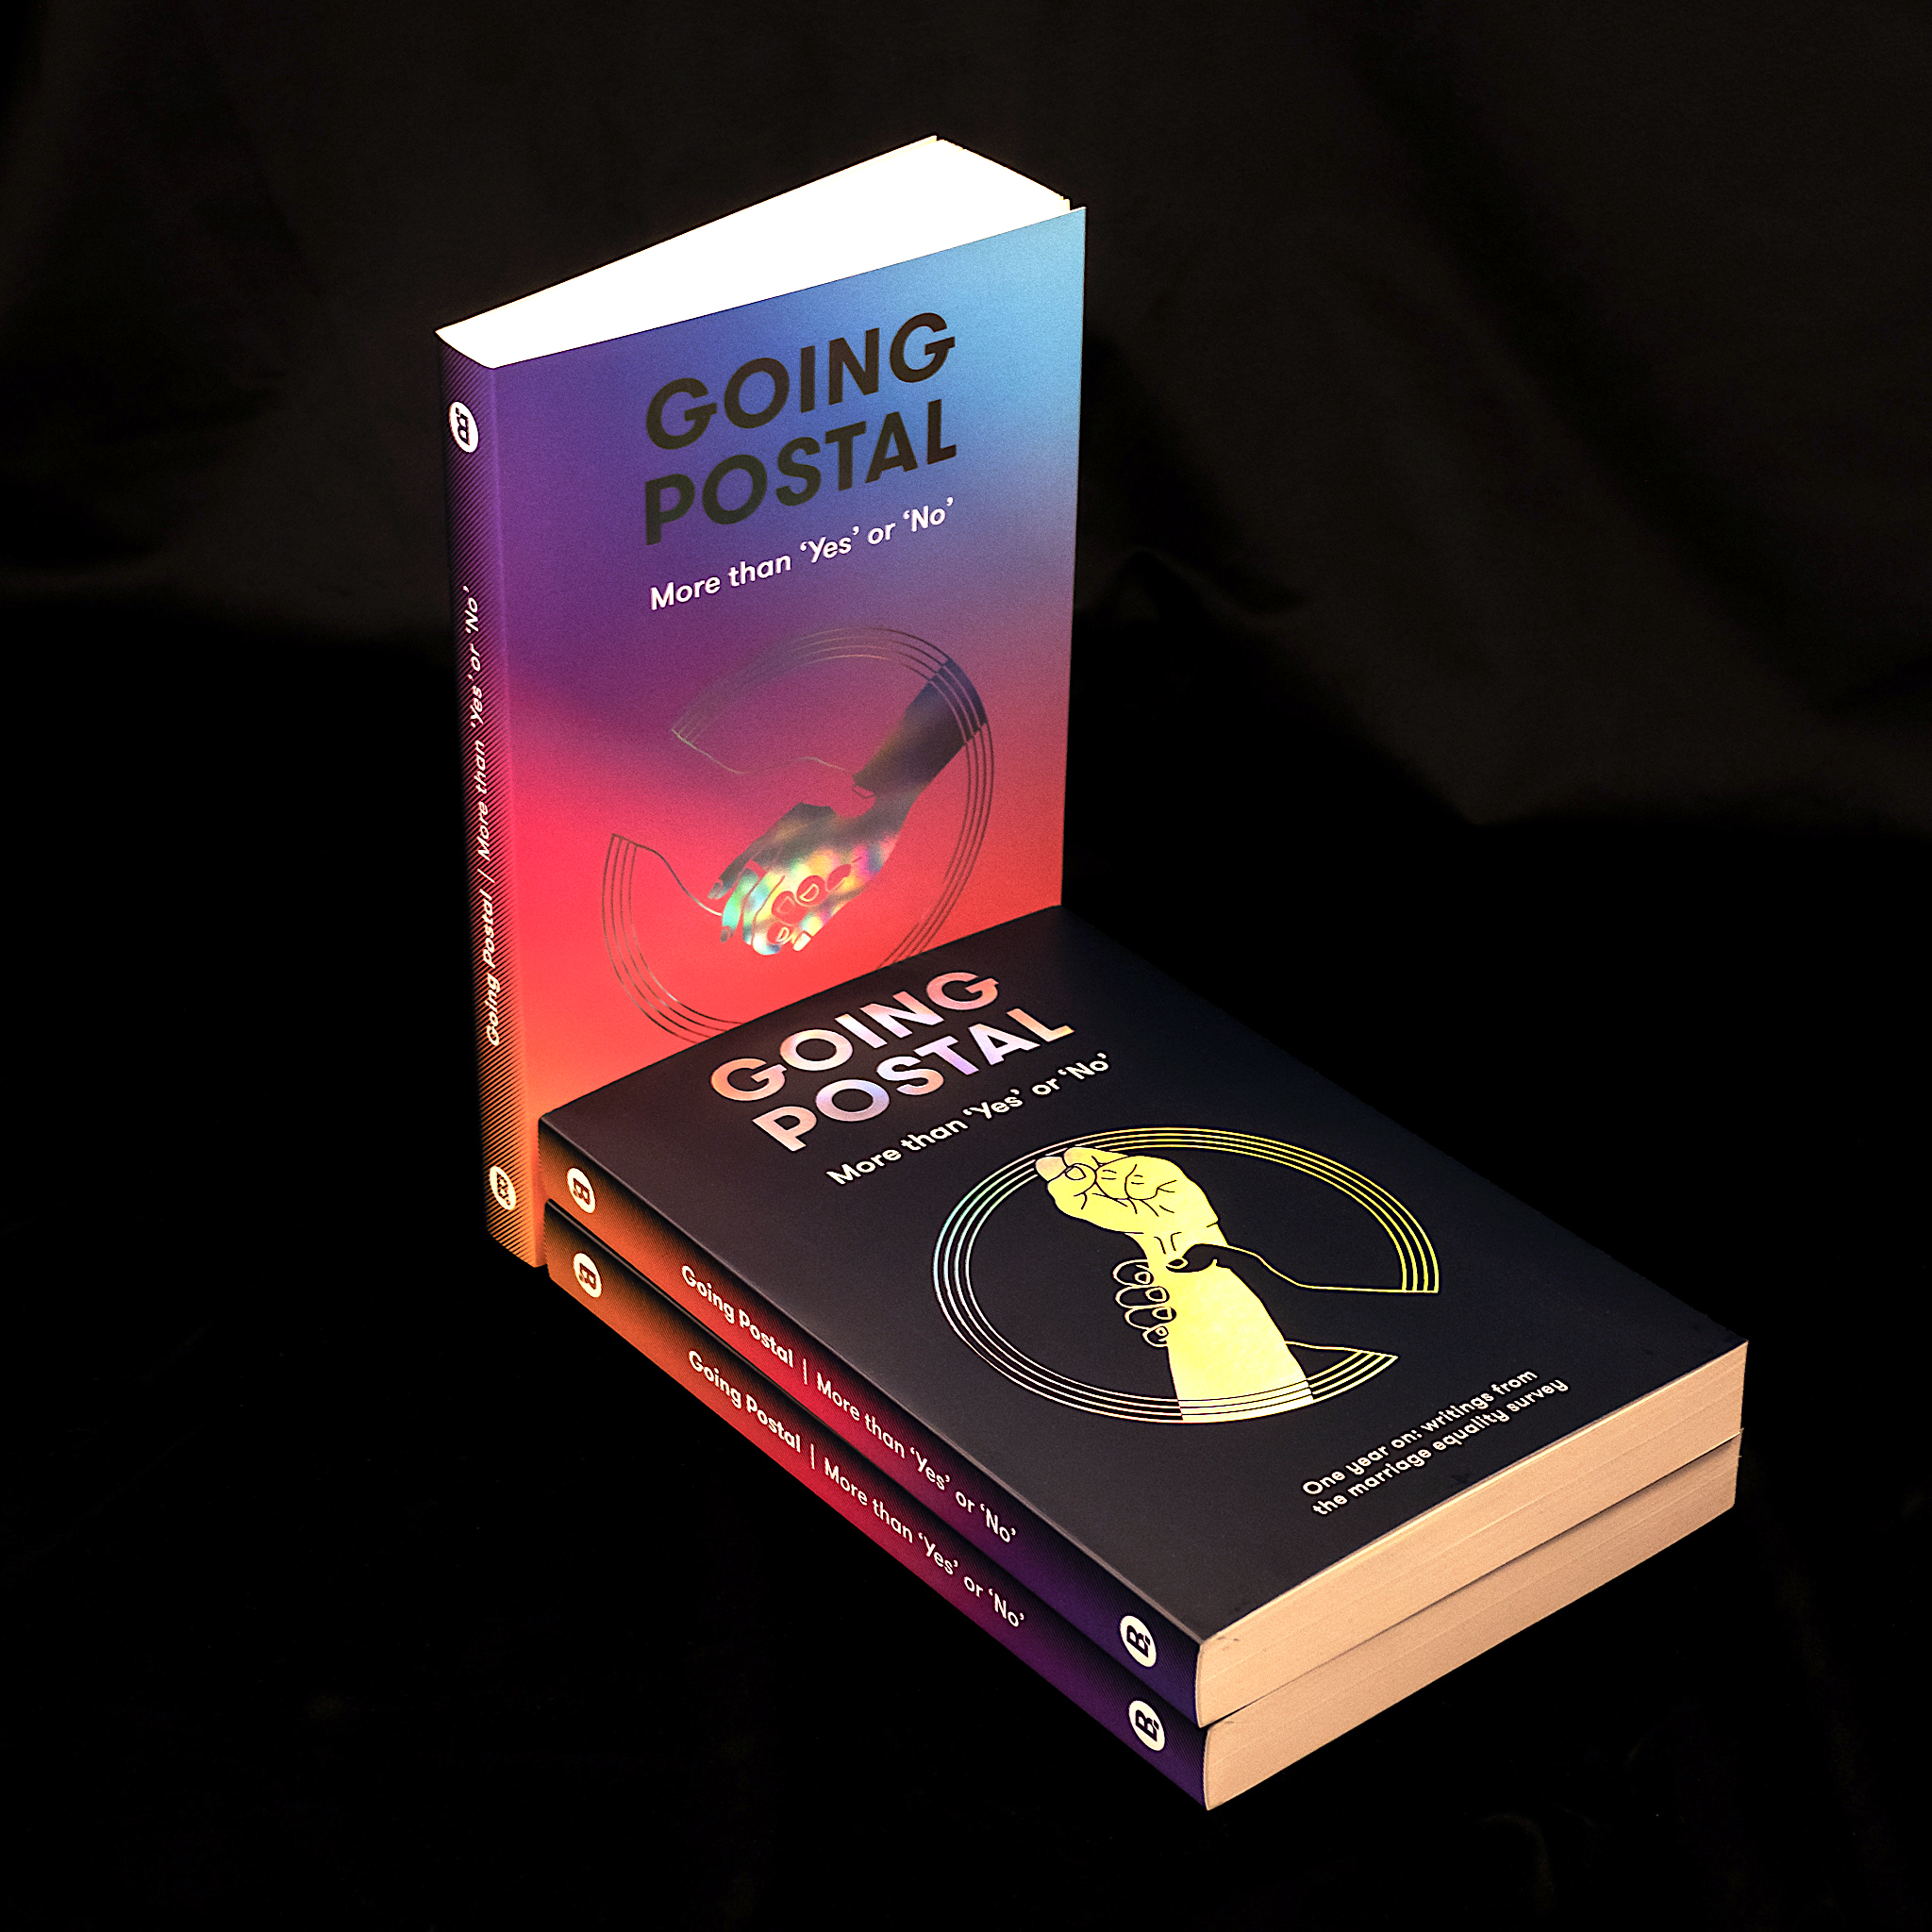 Out now:  Going Postal: More than 'Yes' or 'No'